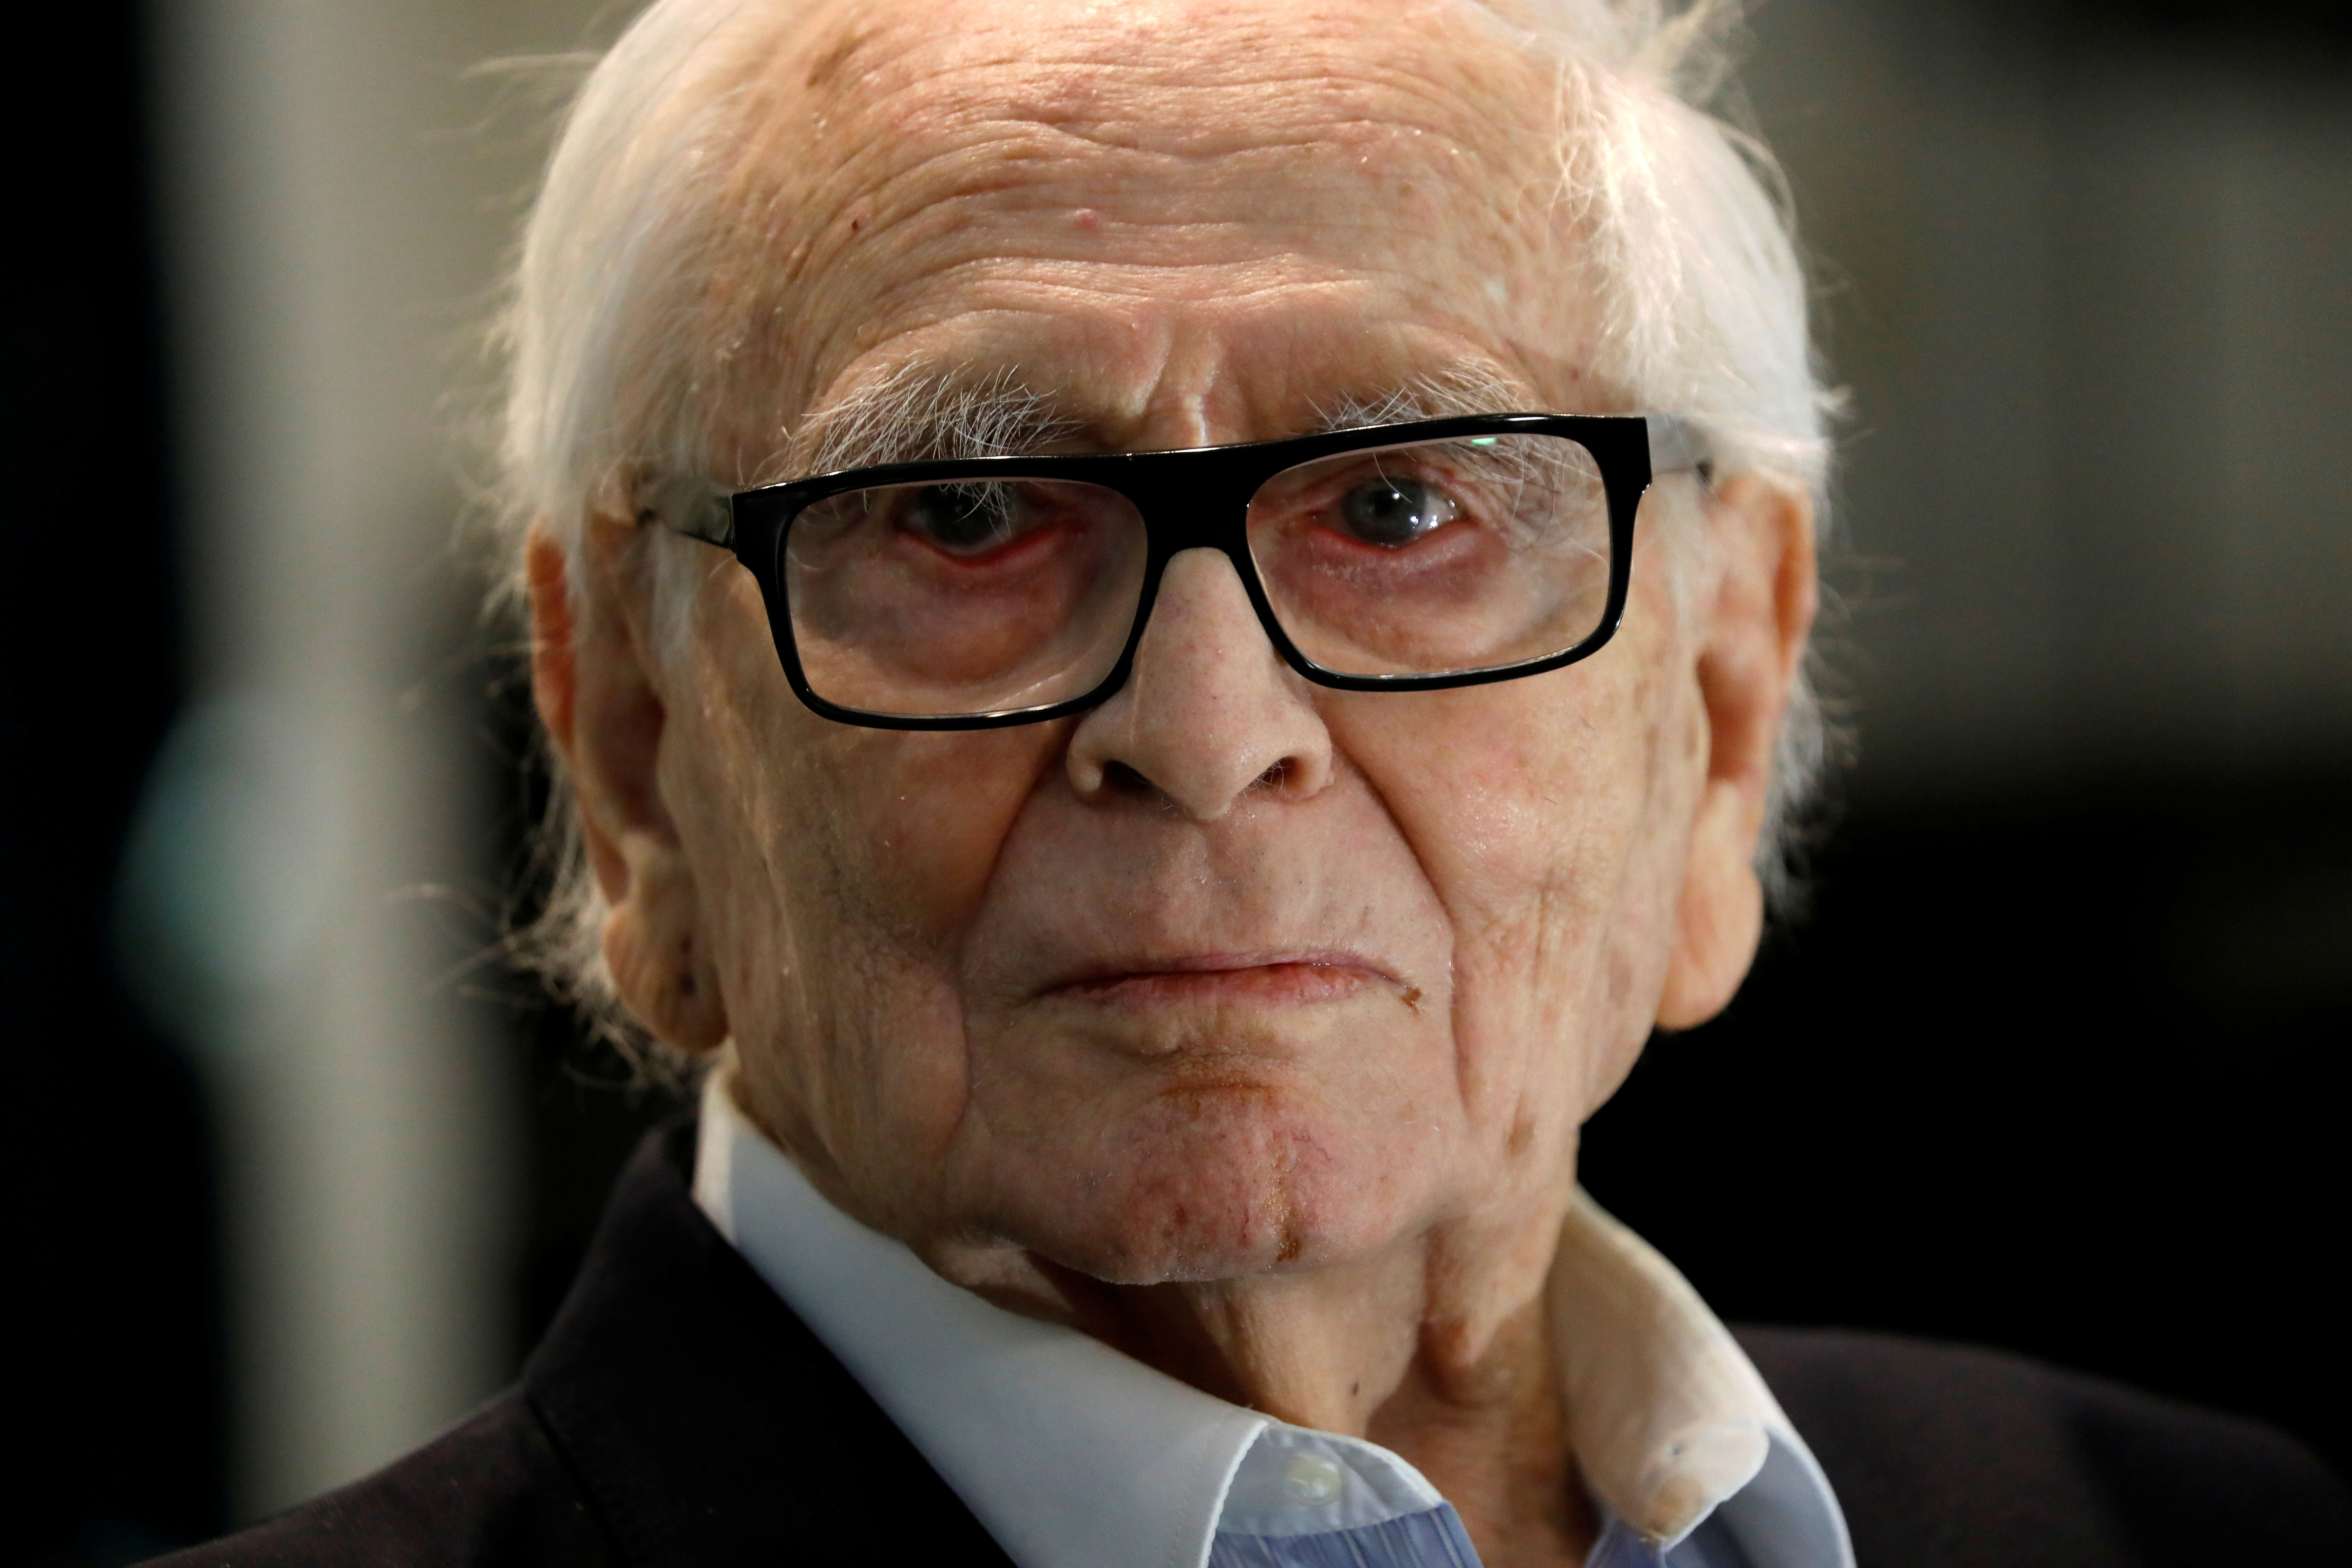 French fashion designer Pierre Cardin, 97, poses during a presentation of a collection made in partnership with Pierre Courtial, a young designer he trained himself at his Studio Pierre Cardin in Paris, France, February 27, 2020. REUTERS/Charles Platiau/File Photo